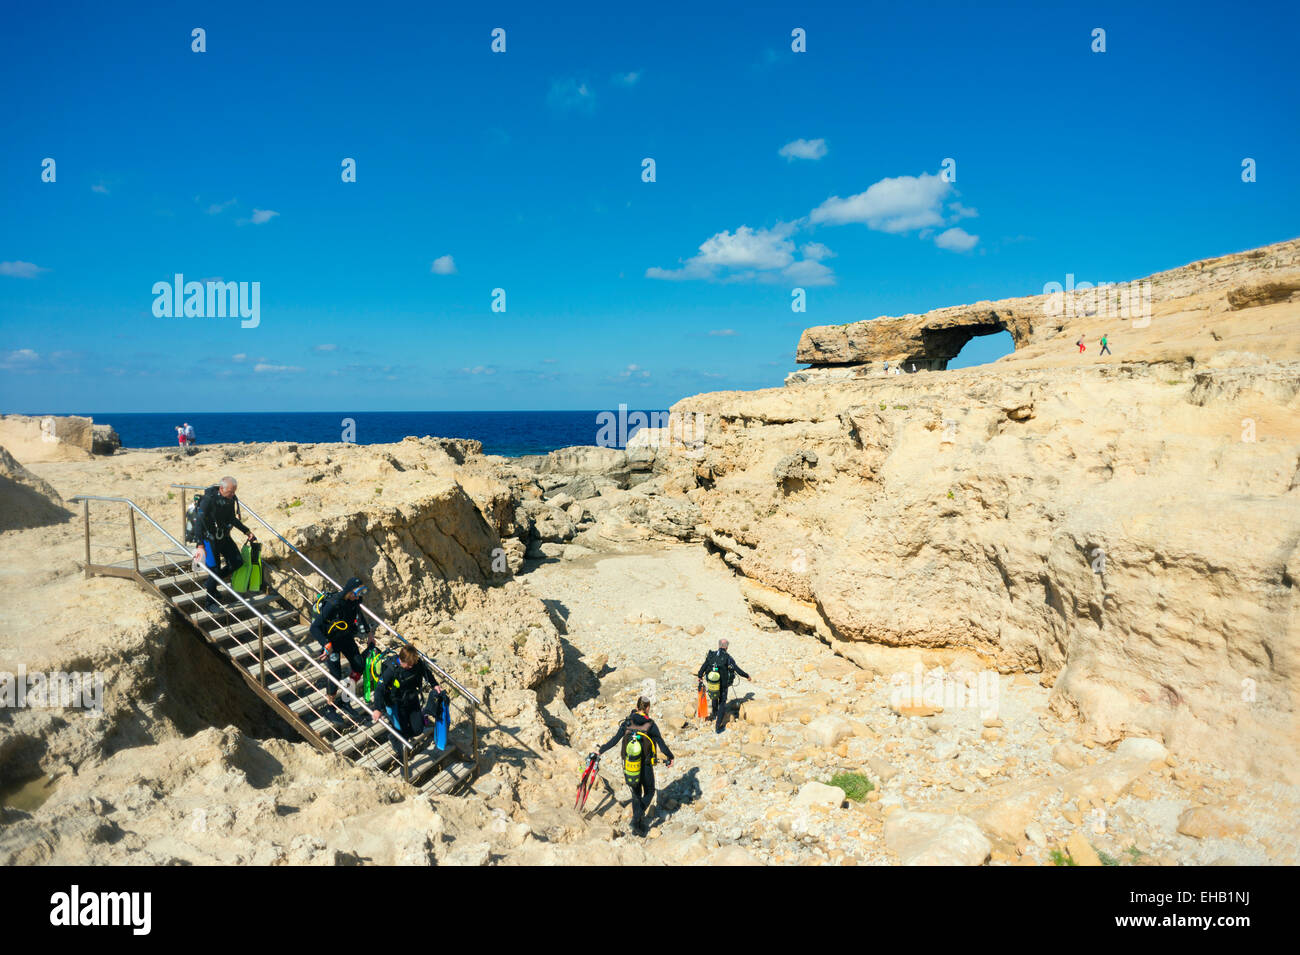 Mediterranean Europe, Malta, Gozo Island, Dwerja Bay, The Azure Window natural arch, scuba divers at the Blue Hole - Stock Image